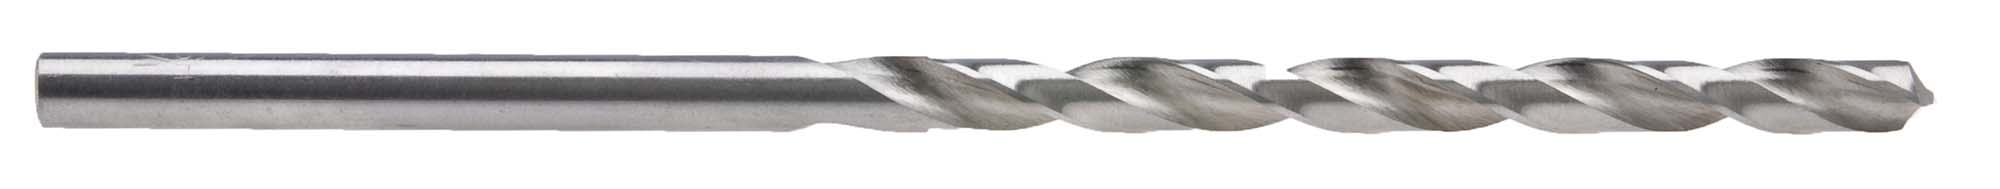 "W (.386"") ""Taper Length"" Long Straight Shank Drill Bit, High Speed Steel"